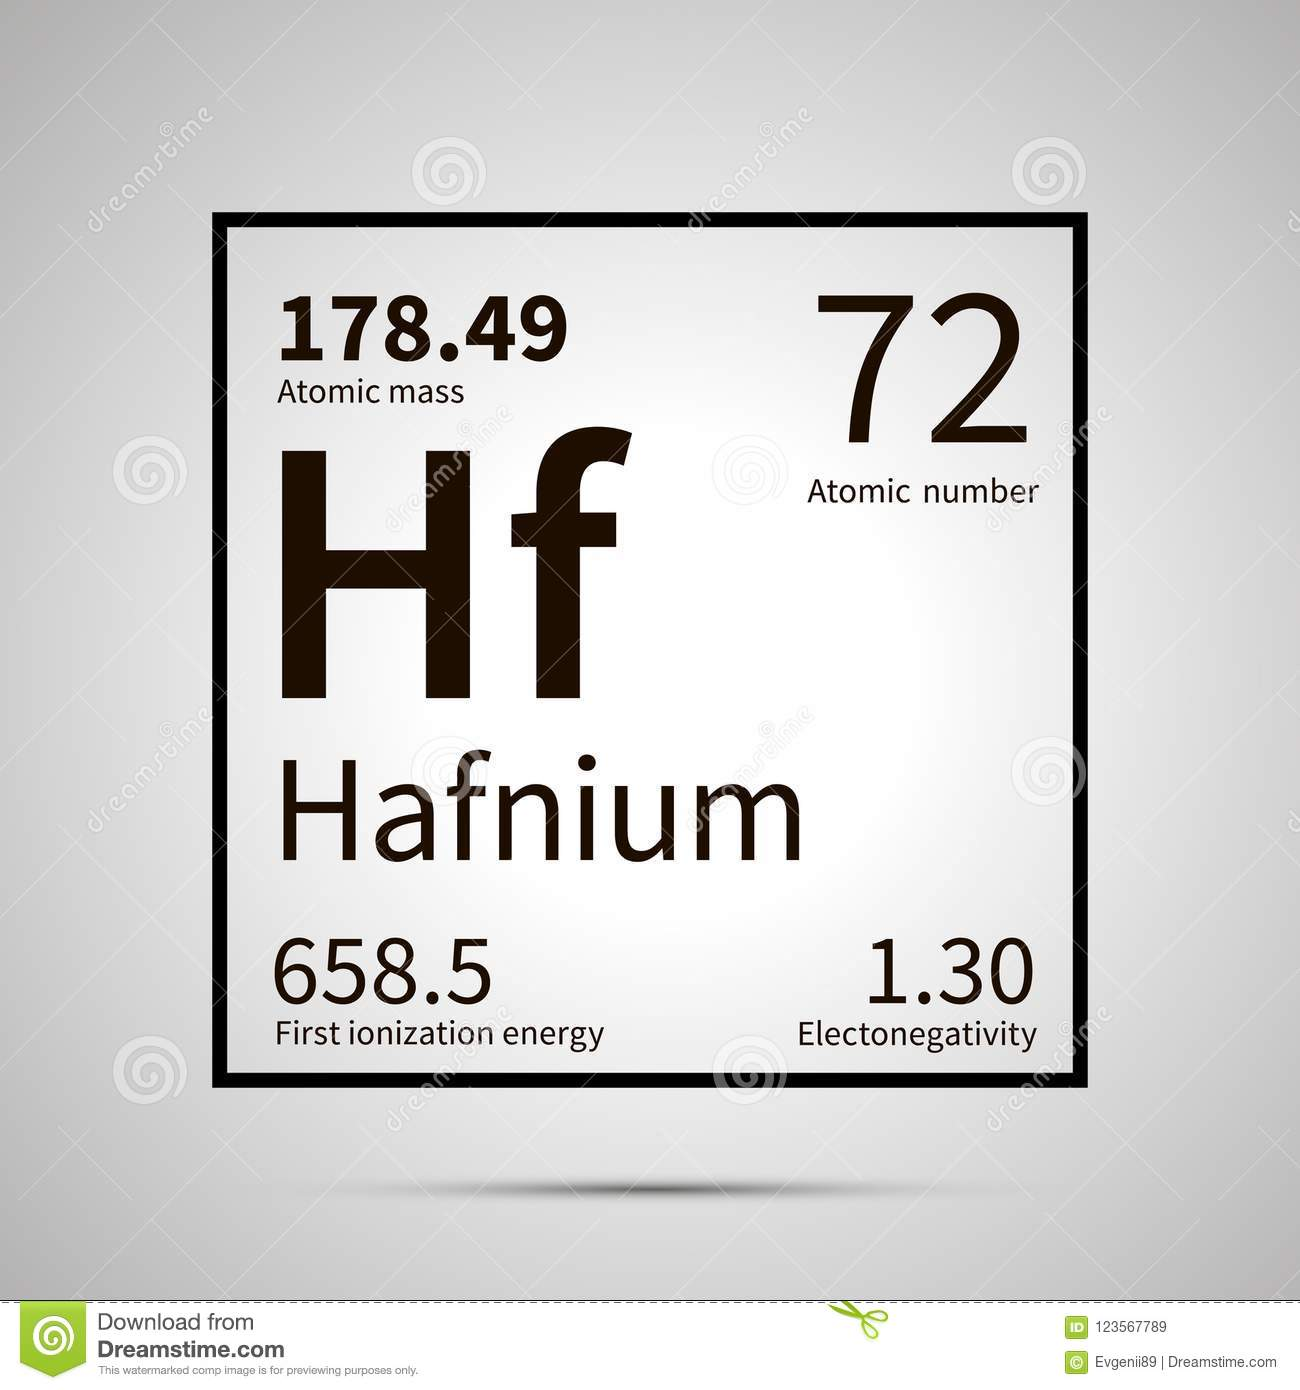 Hafnium Chemical Element With First Ionization Energy